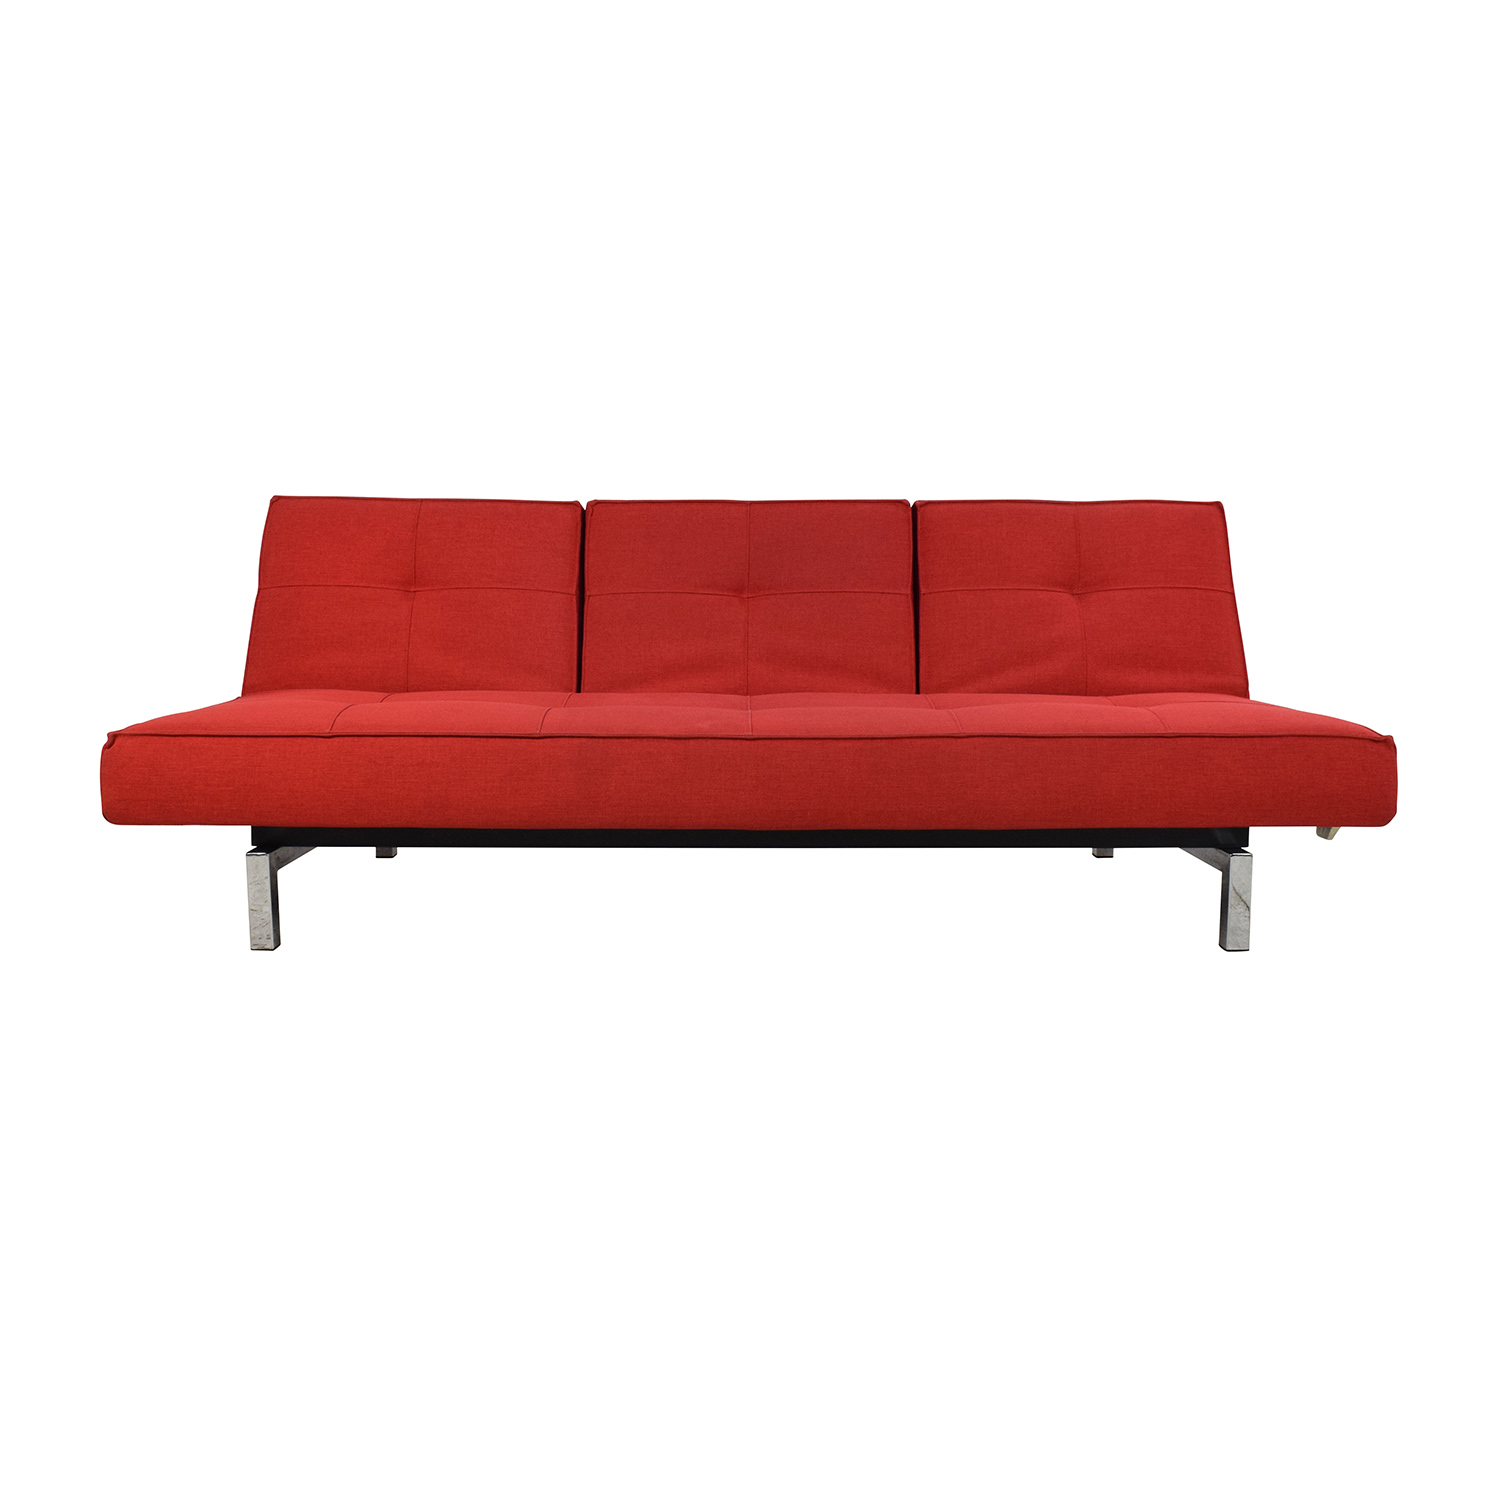 Room & Board Eden Convertible Red Sofa / Sofas